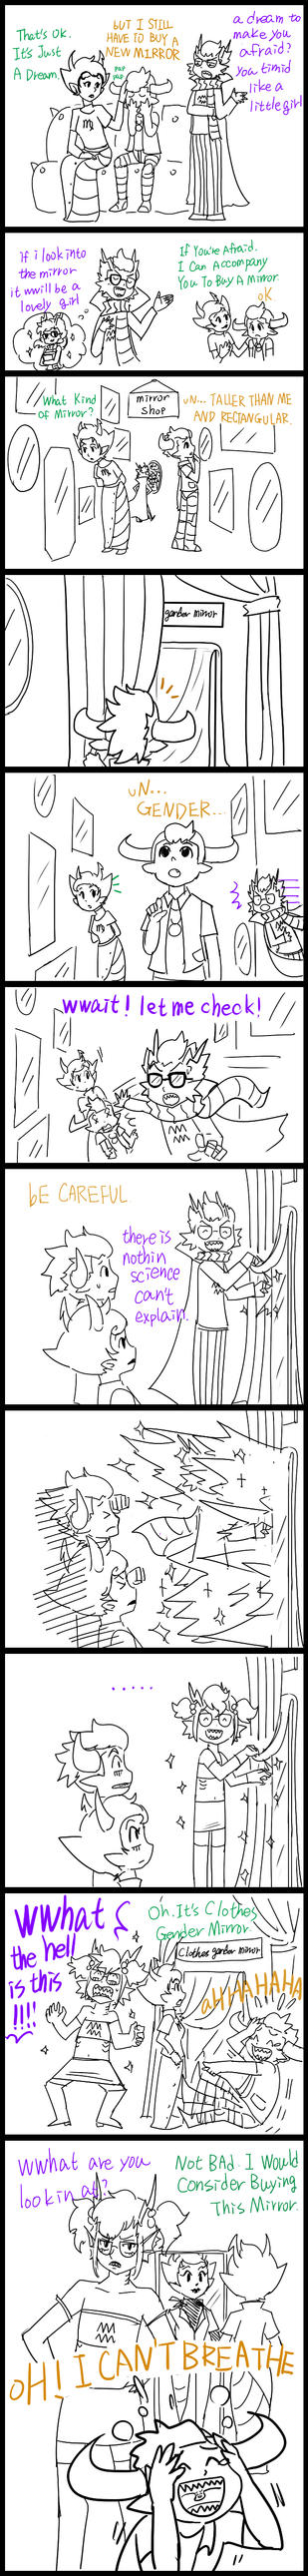 Tavros and Gender Mirror II? by salihombox